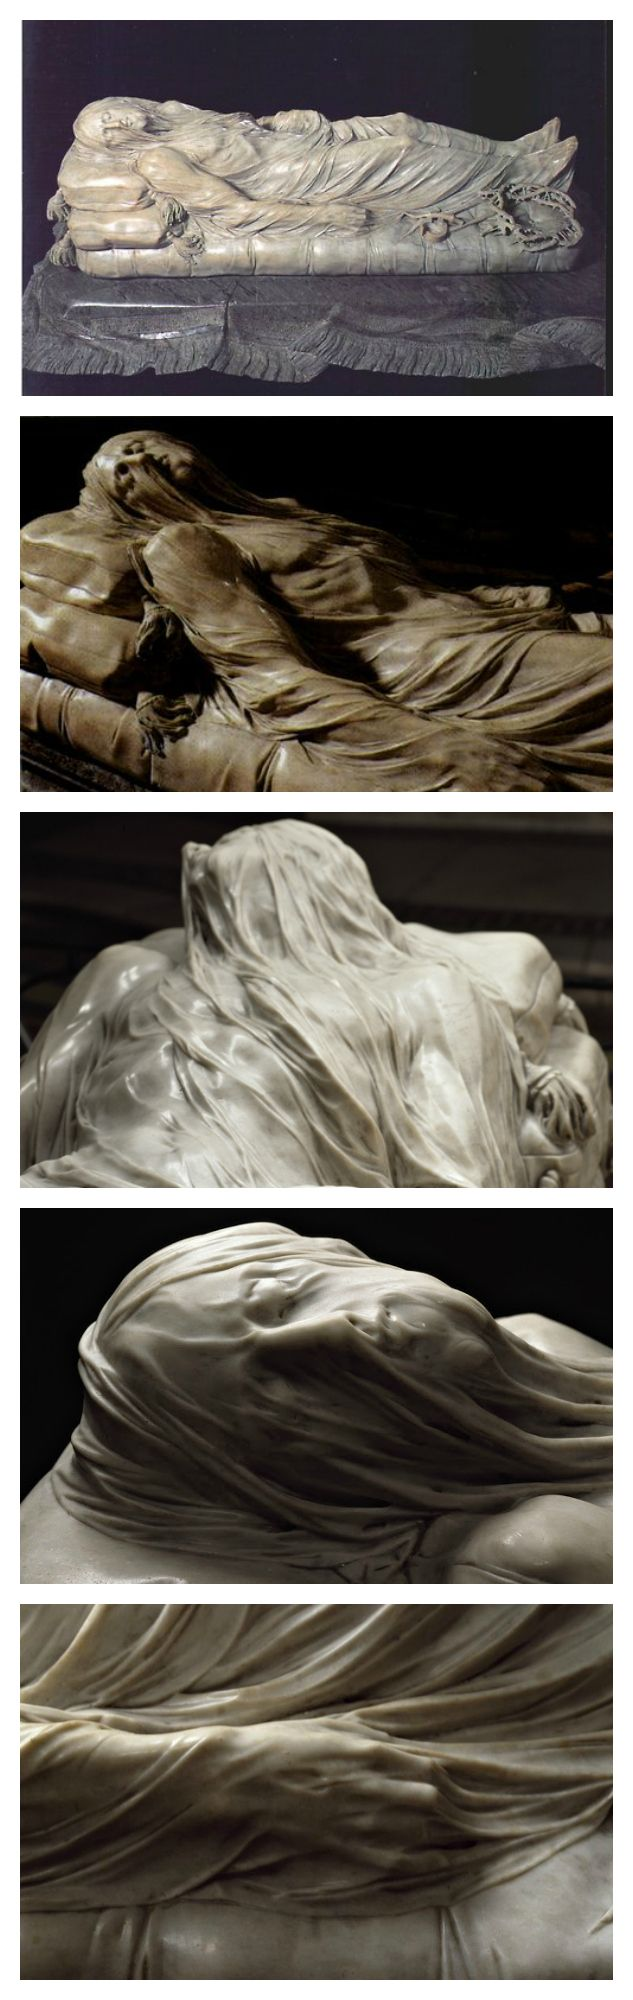 The Veiled Christ. Marble Sculpture by Giuseppe Sanmartino (1753)